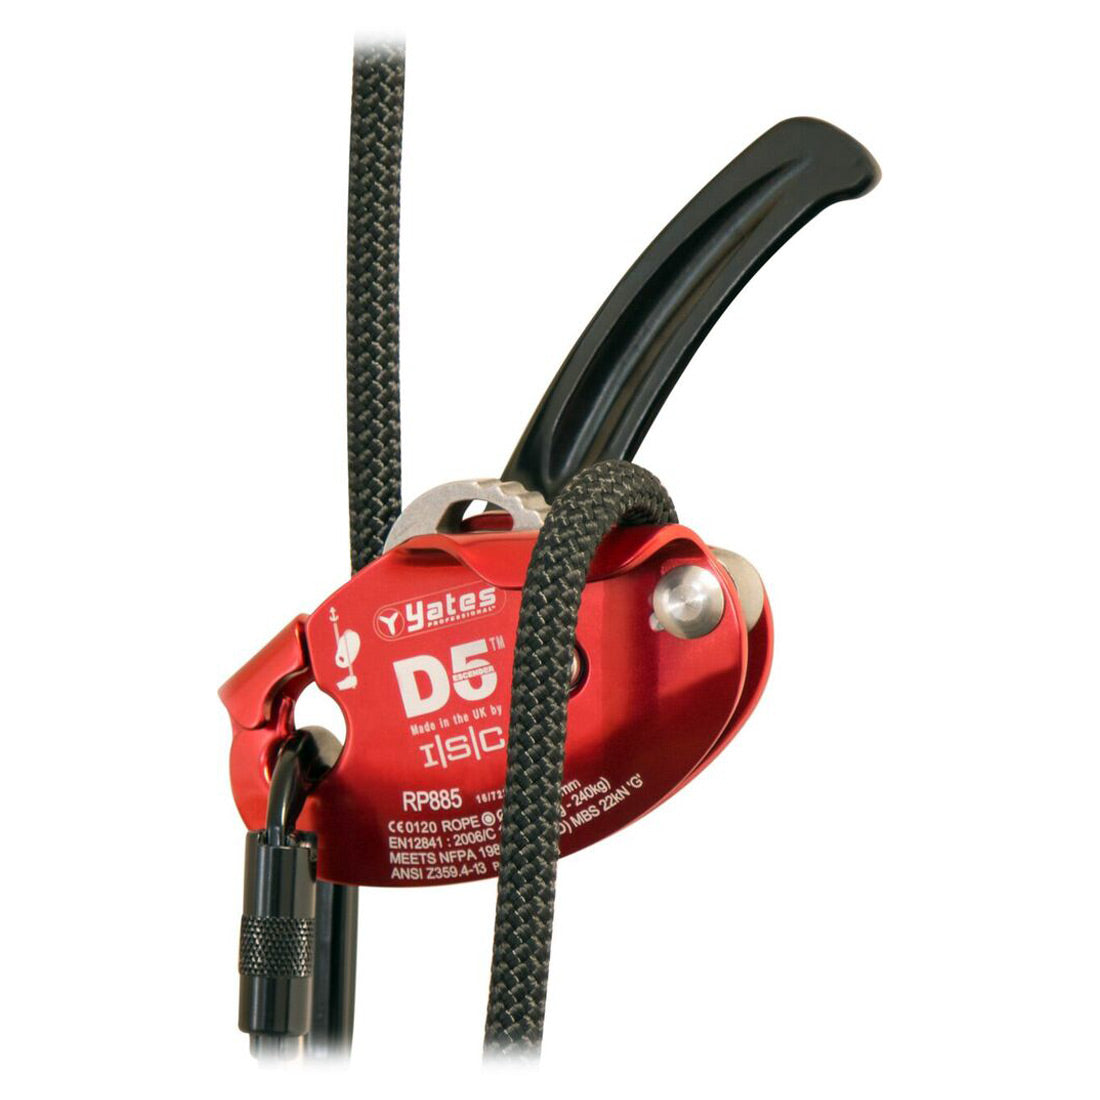 Yates ISCD5 Descender/Belay Device Red